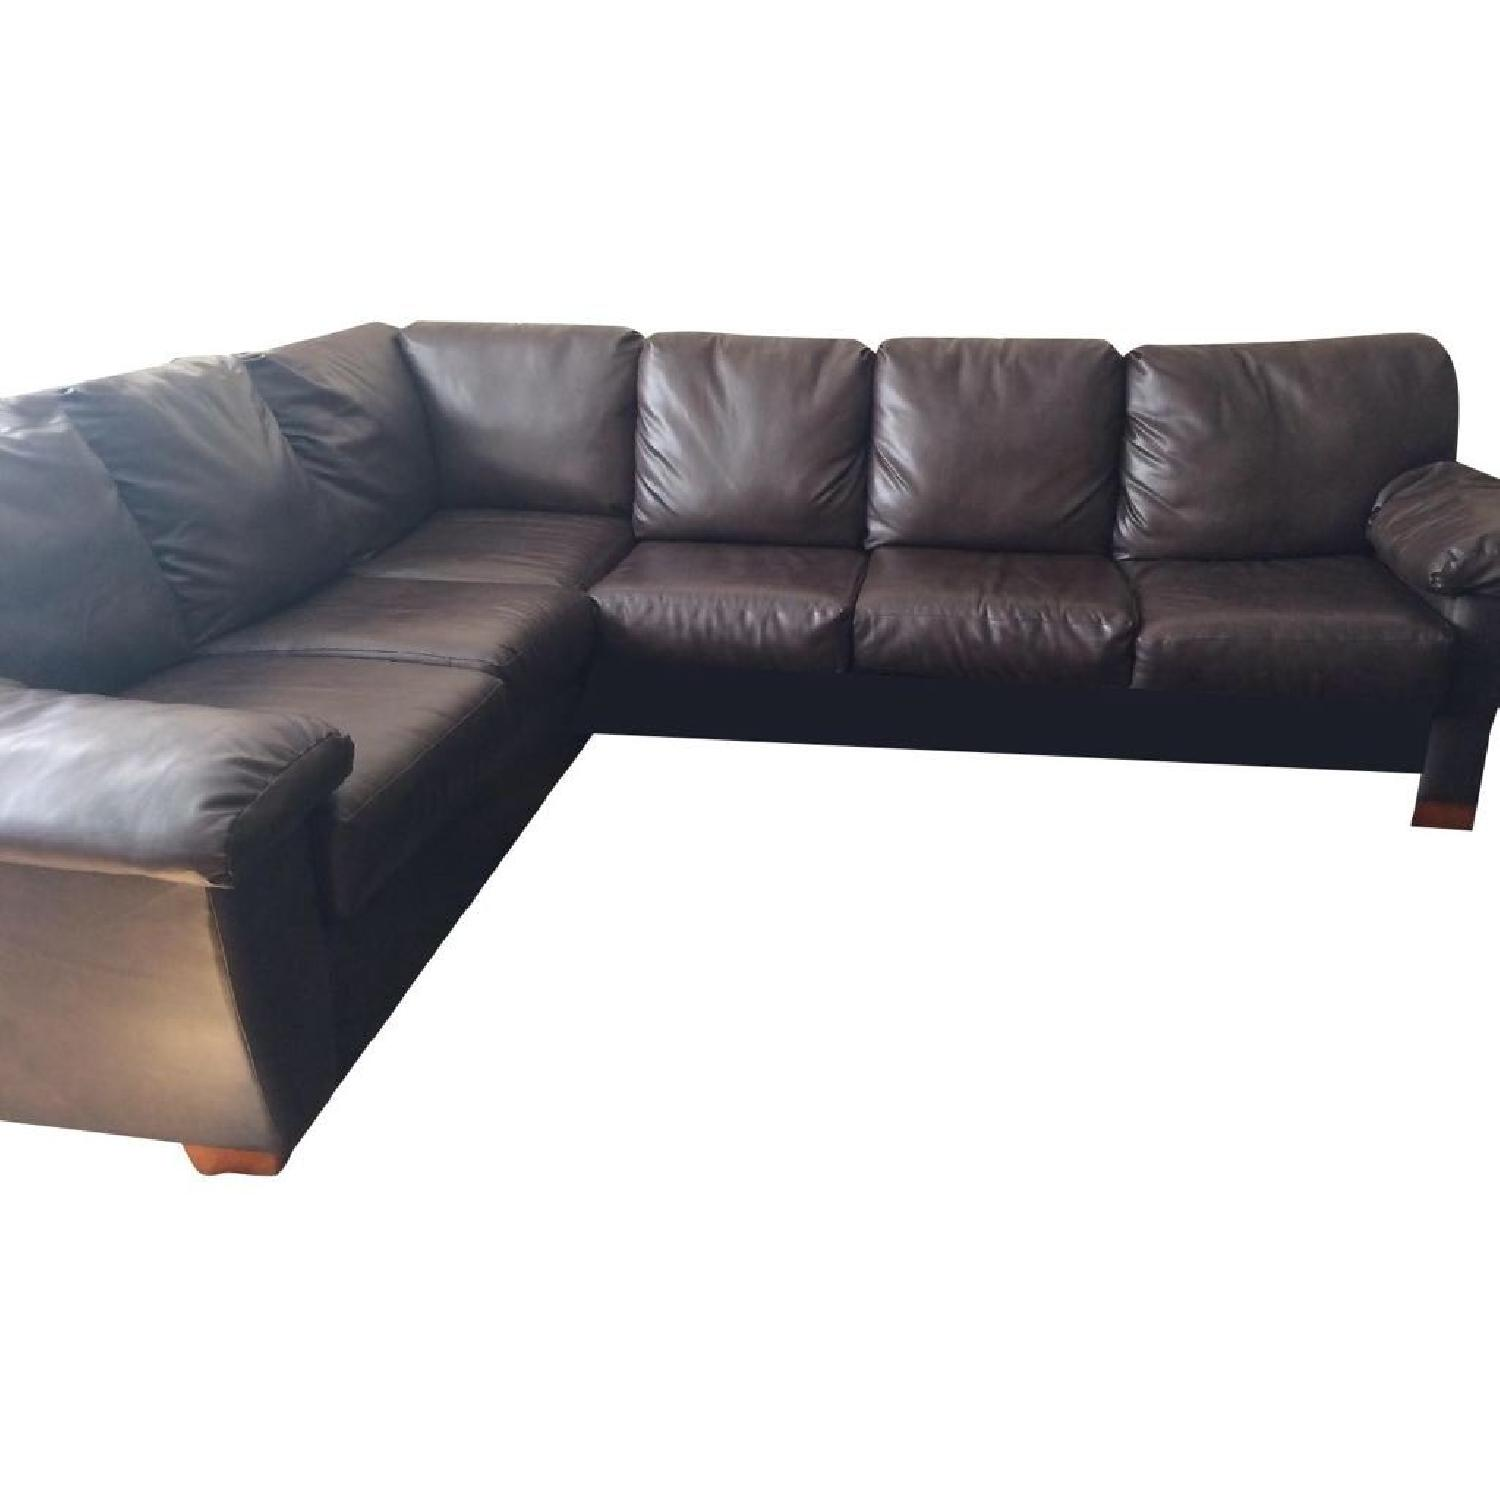 Jennifer Convertibles Brown Leather Sleeper Sectional ...  sc 1 st  AptDeco : jennifer leather sectional - Sectionals, Sofas & Couches